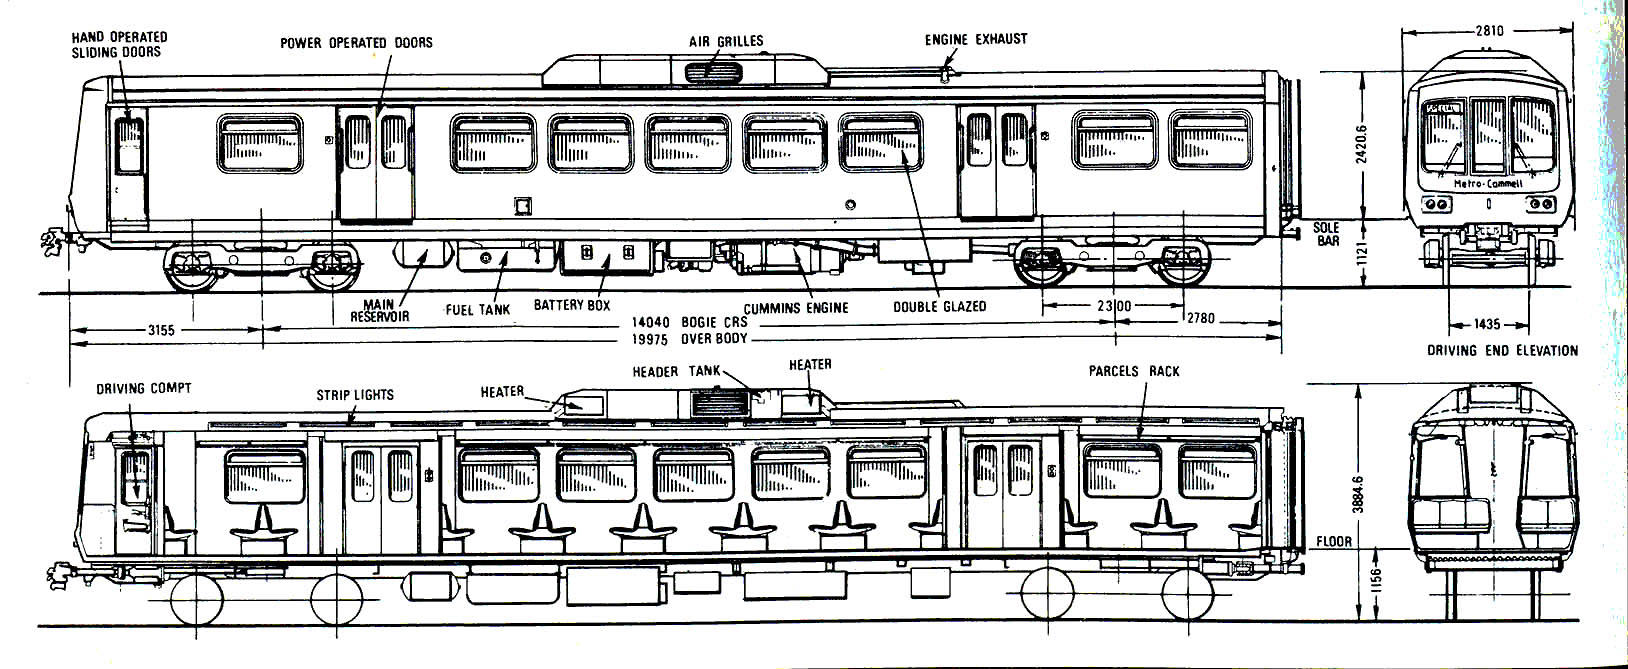 Diagram Of Train Archive Automotive Wiring Intertherm Furnace Mgho65a Class 151 Sprinter Prototype Rh Traintesting Com Training Process And Development